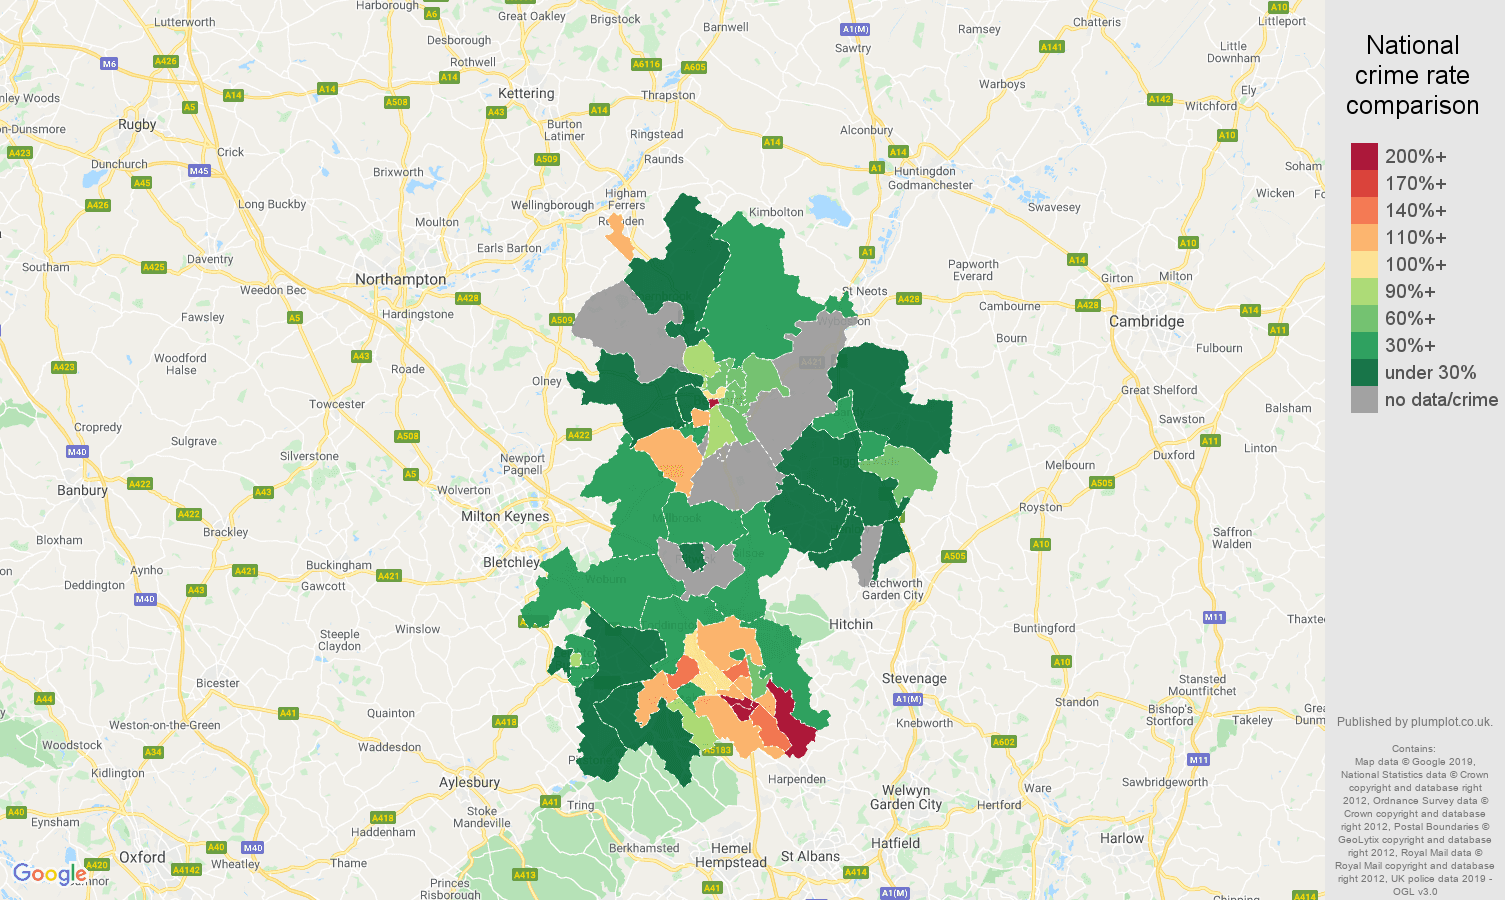 Bedfordshire possession of weapons crime rate comparison map